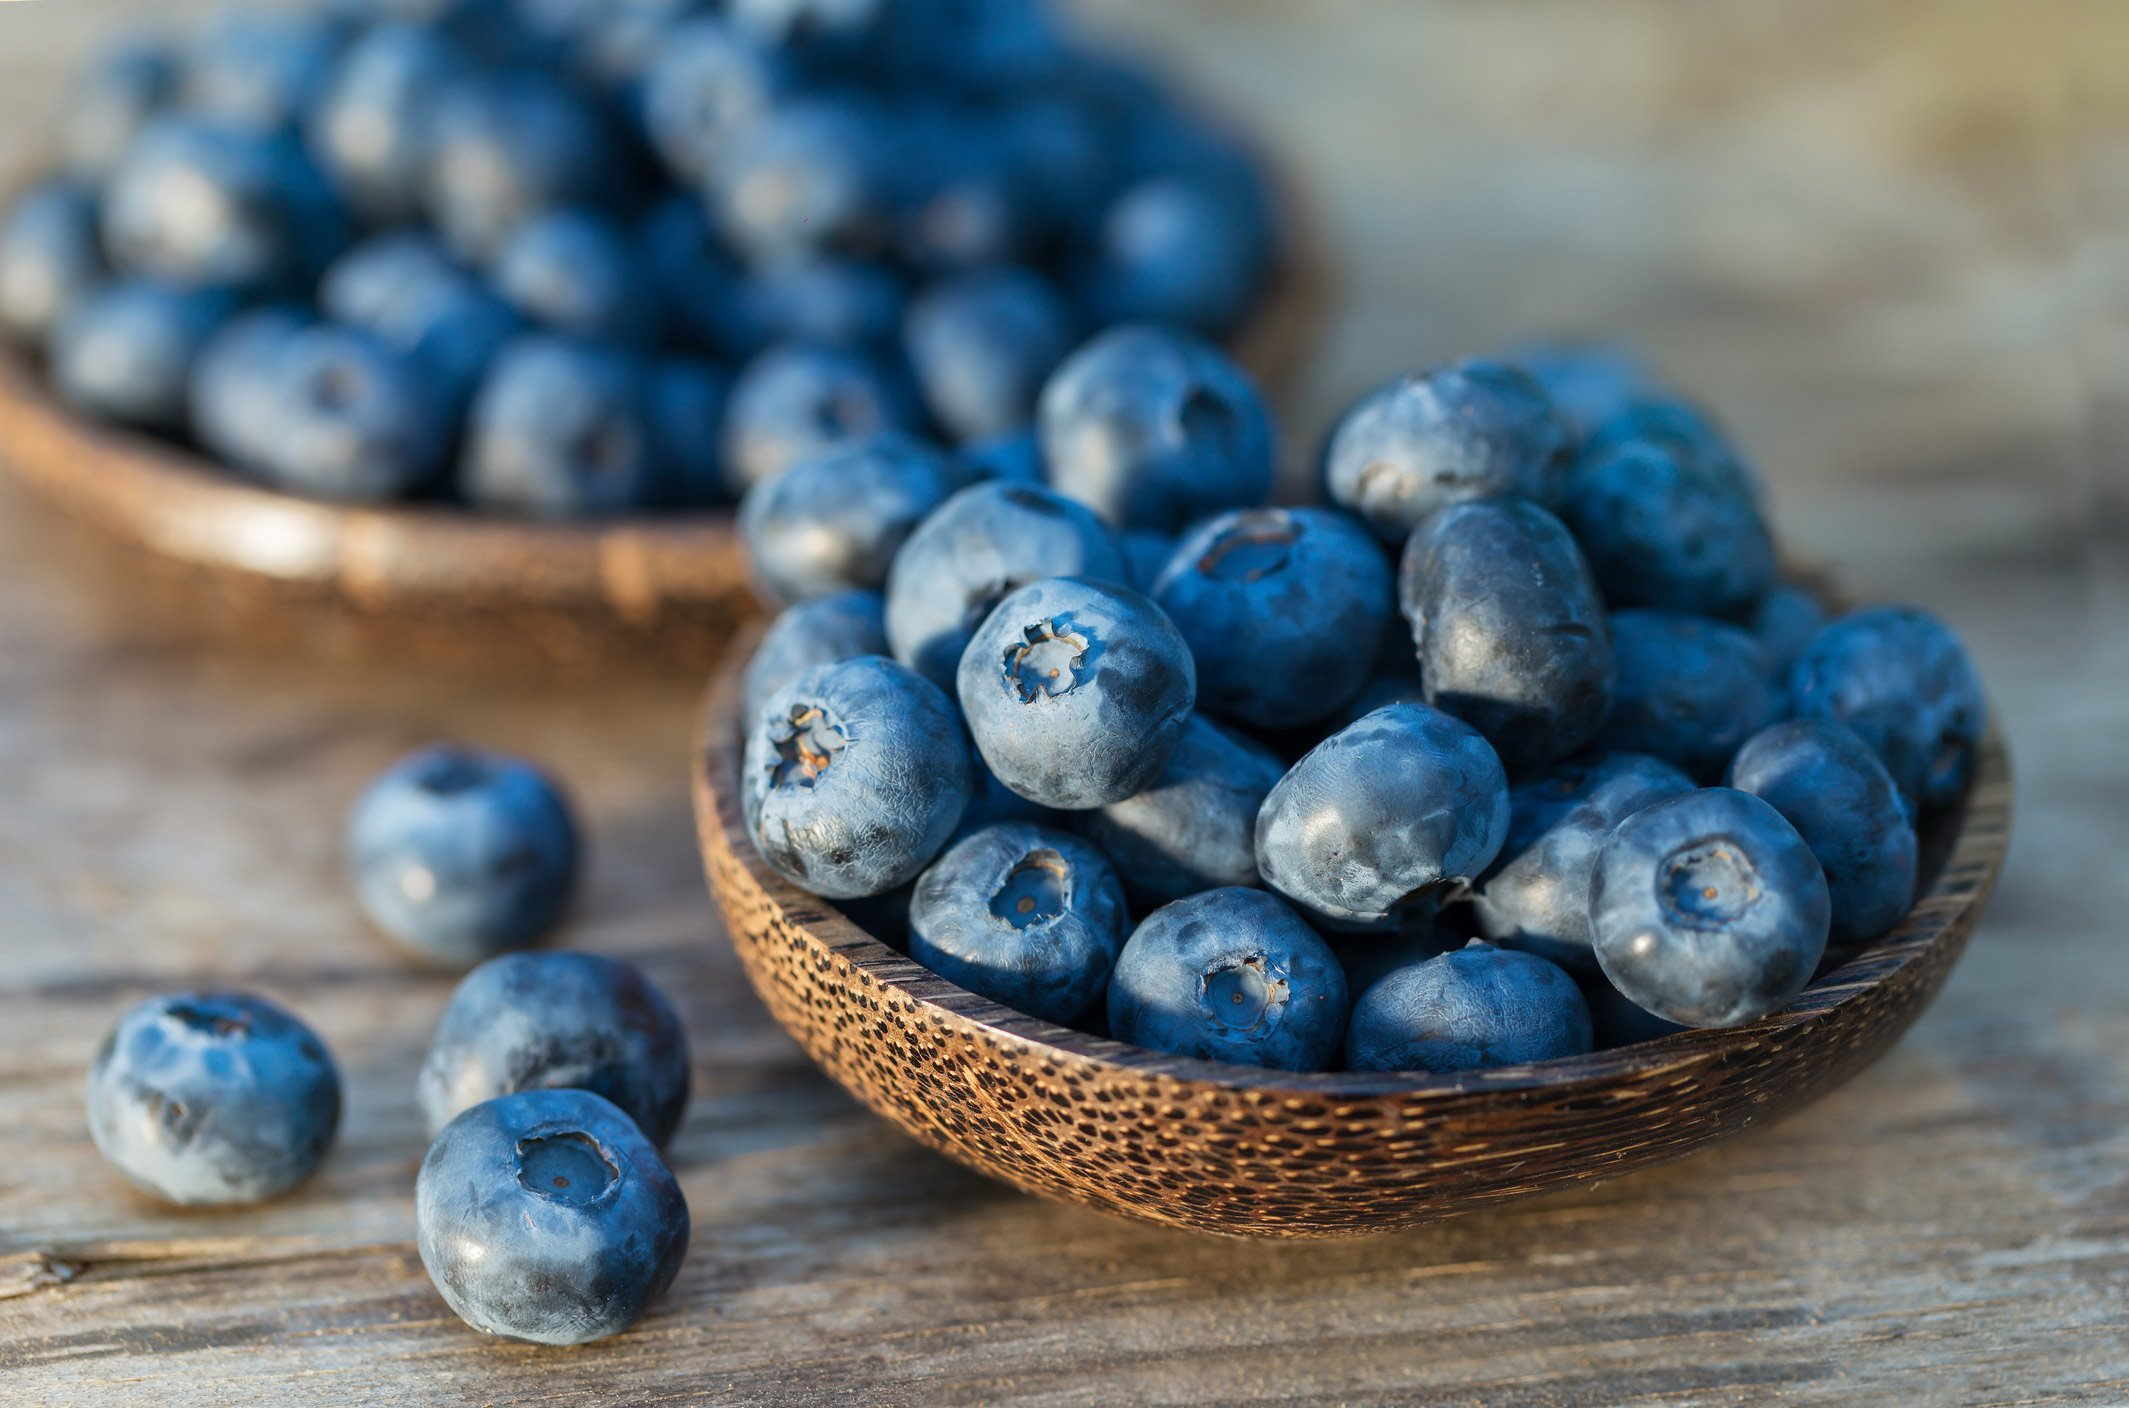 Top detoxifying foods: Blueberries